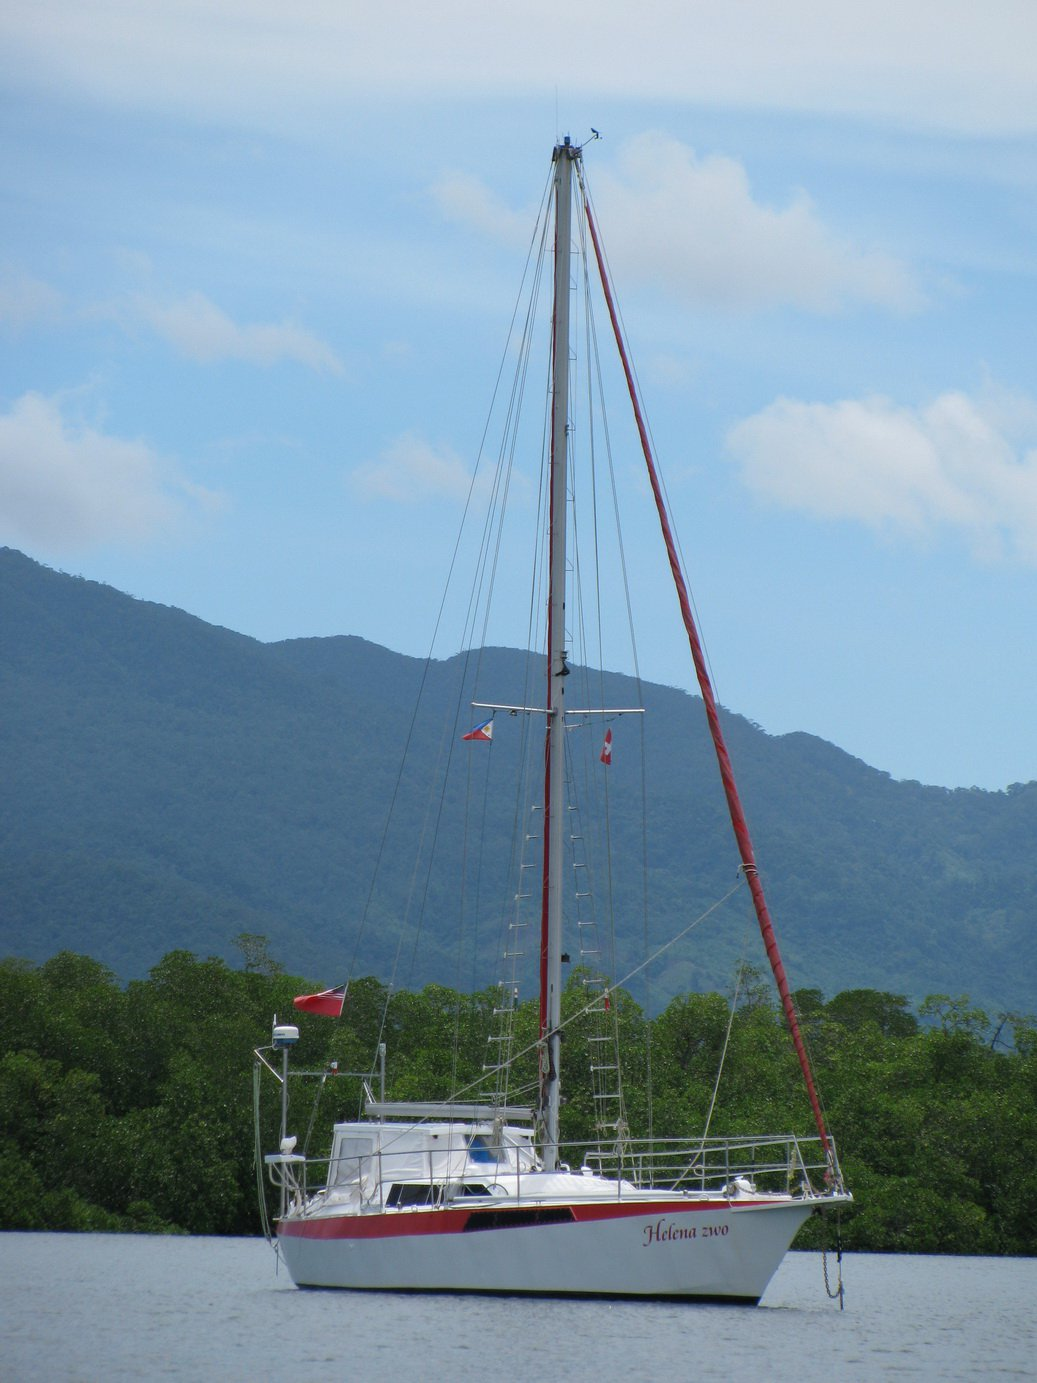 FOR SALE: Cruising yacht to sell  (Price reduced)